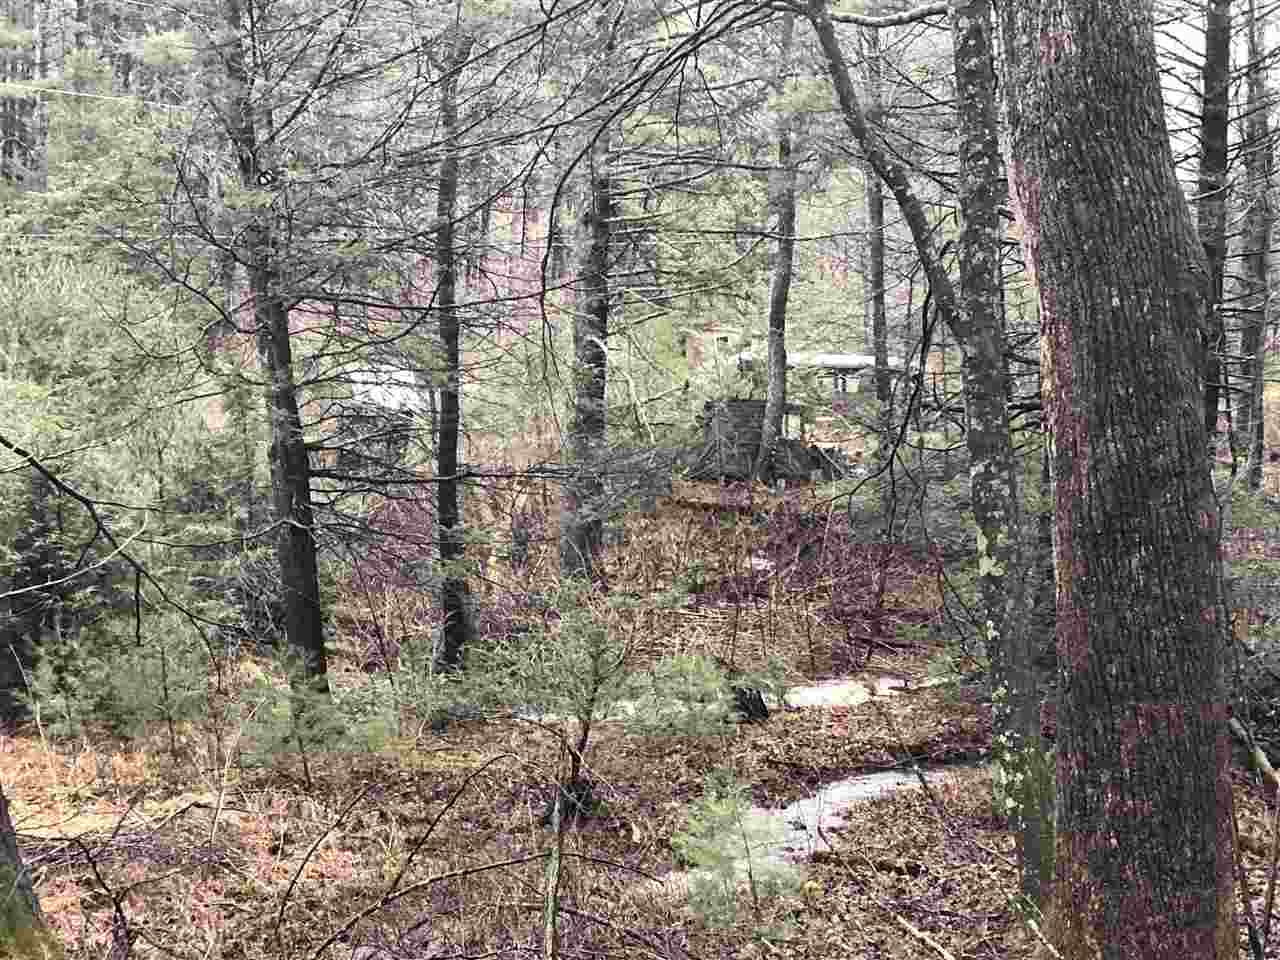 0 MONGOLD HOLLOW RD, MATHIAS, WV 26812